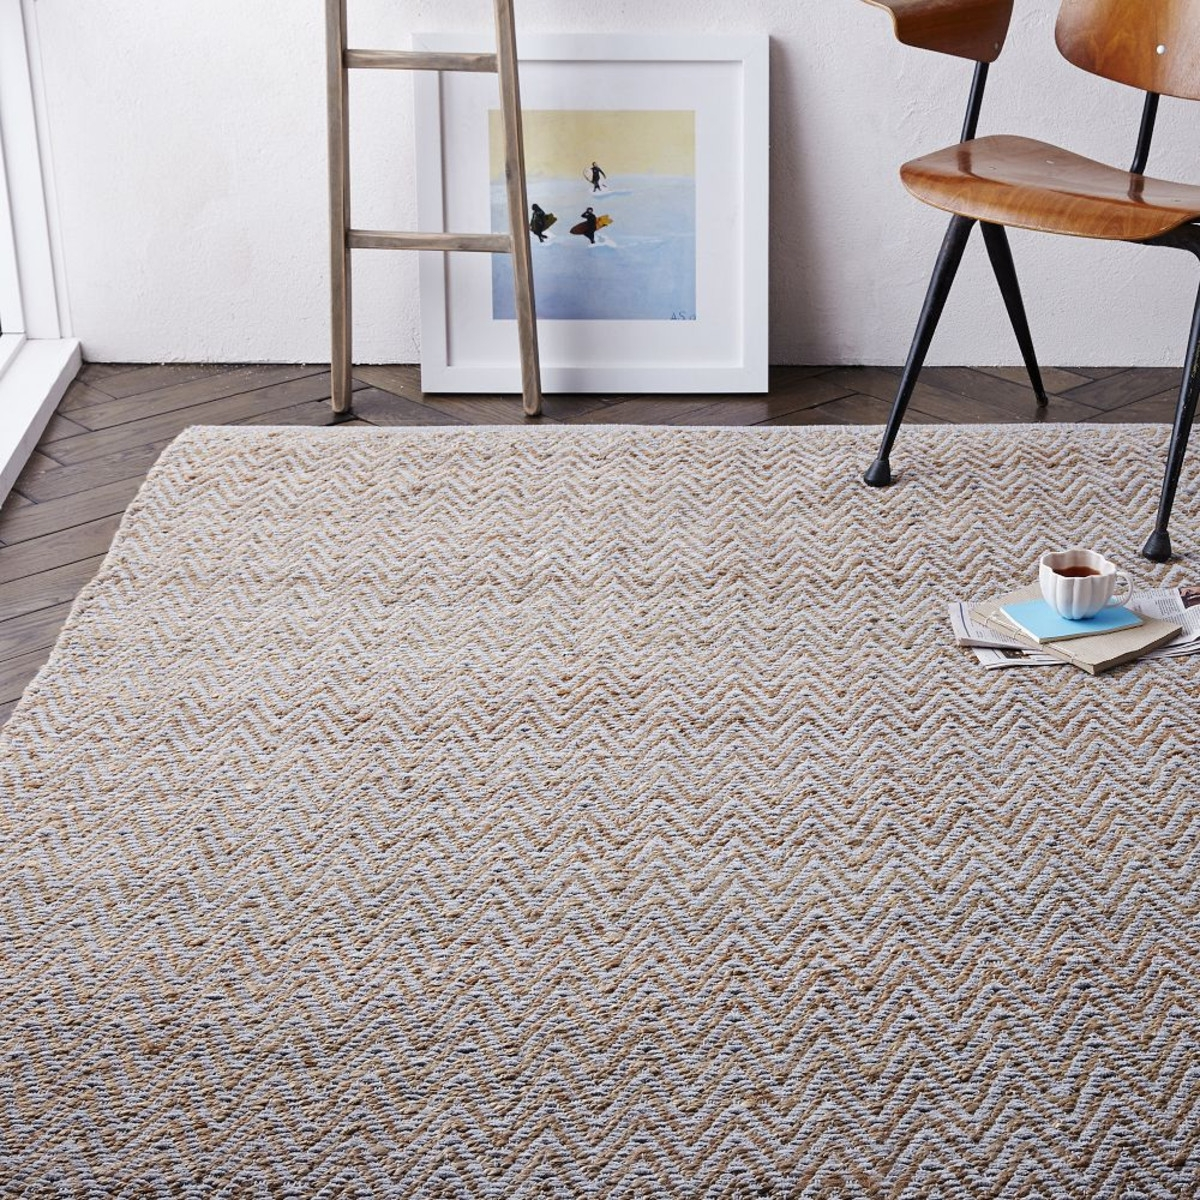 Featured Image of Large Jute Rugs